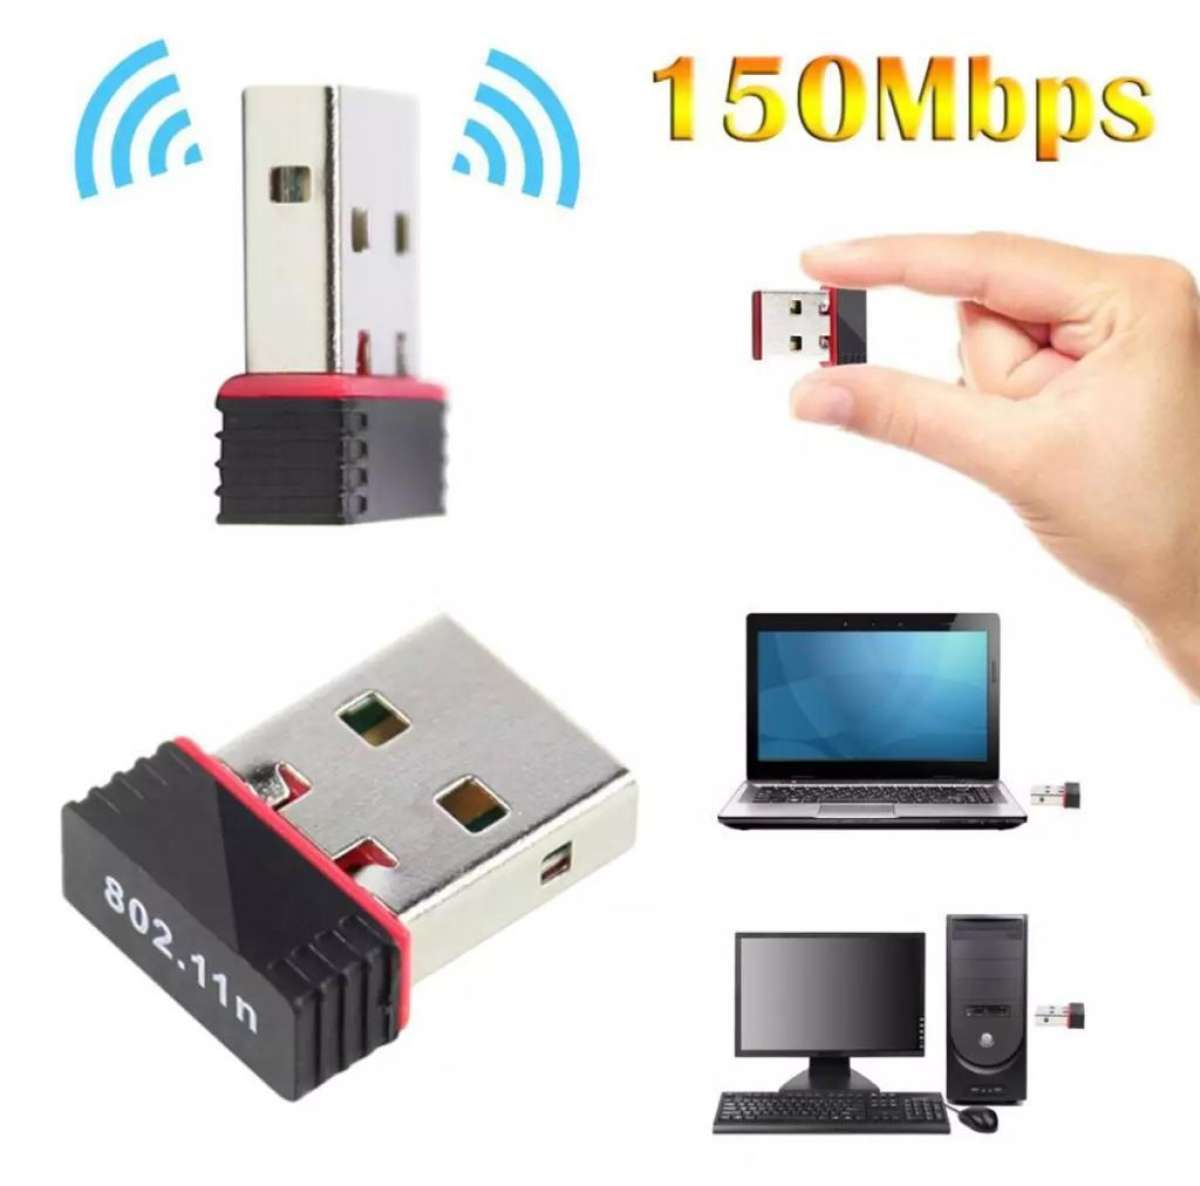 USB Wifi Receiver Catcher Mini Adapter for PC Laptop and Desktop (With Driver CD)